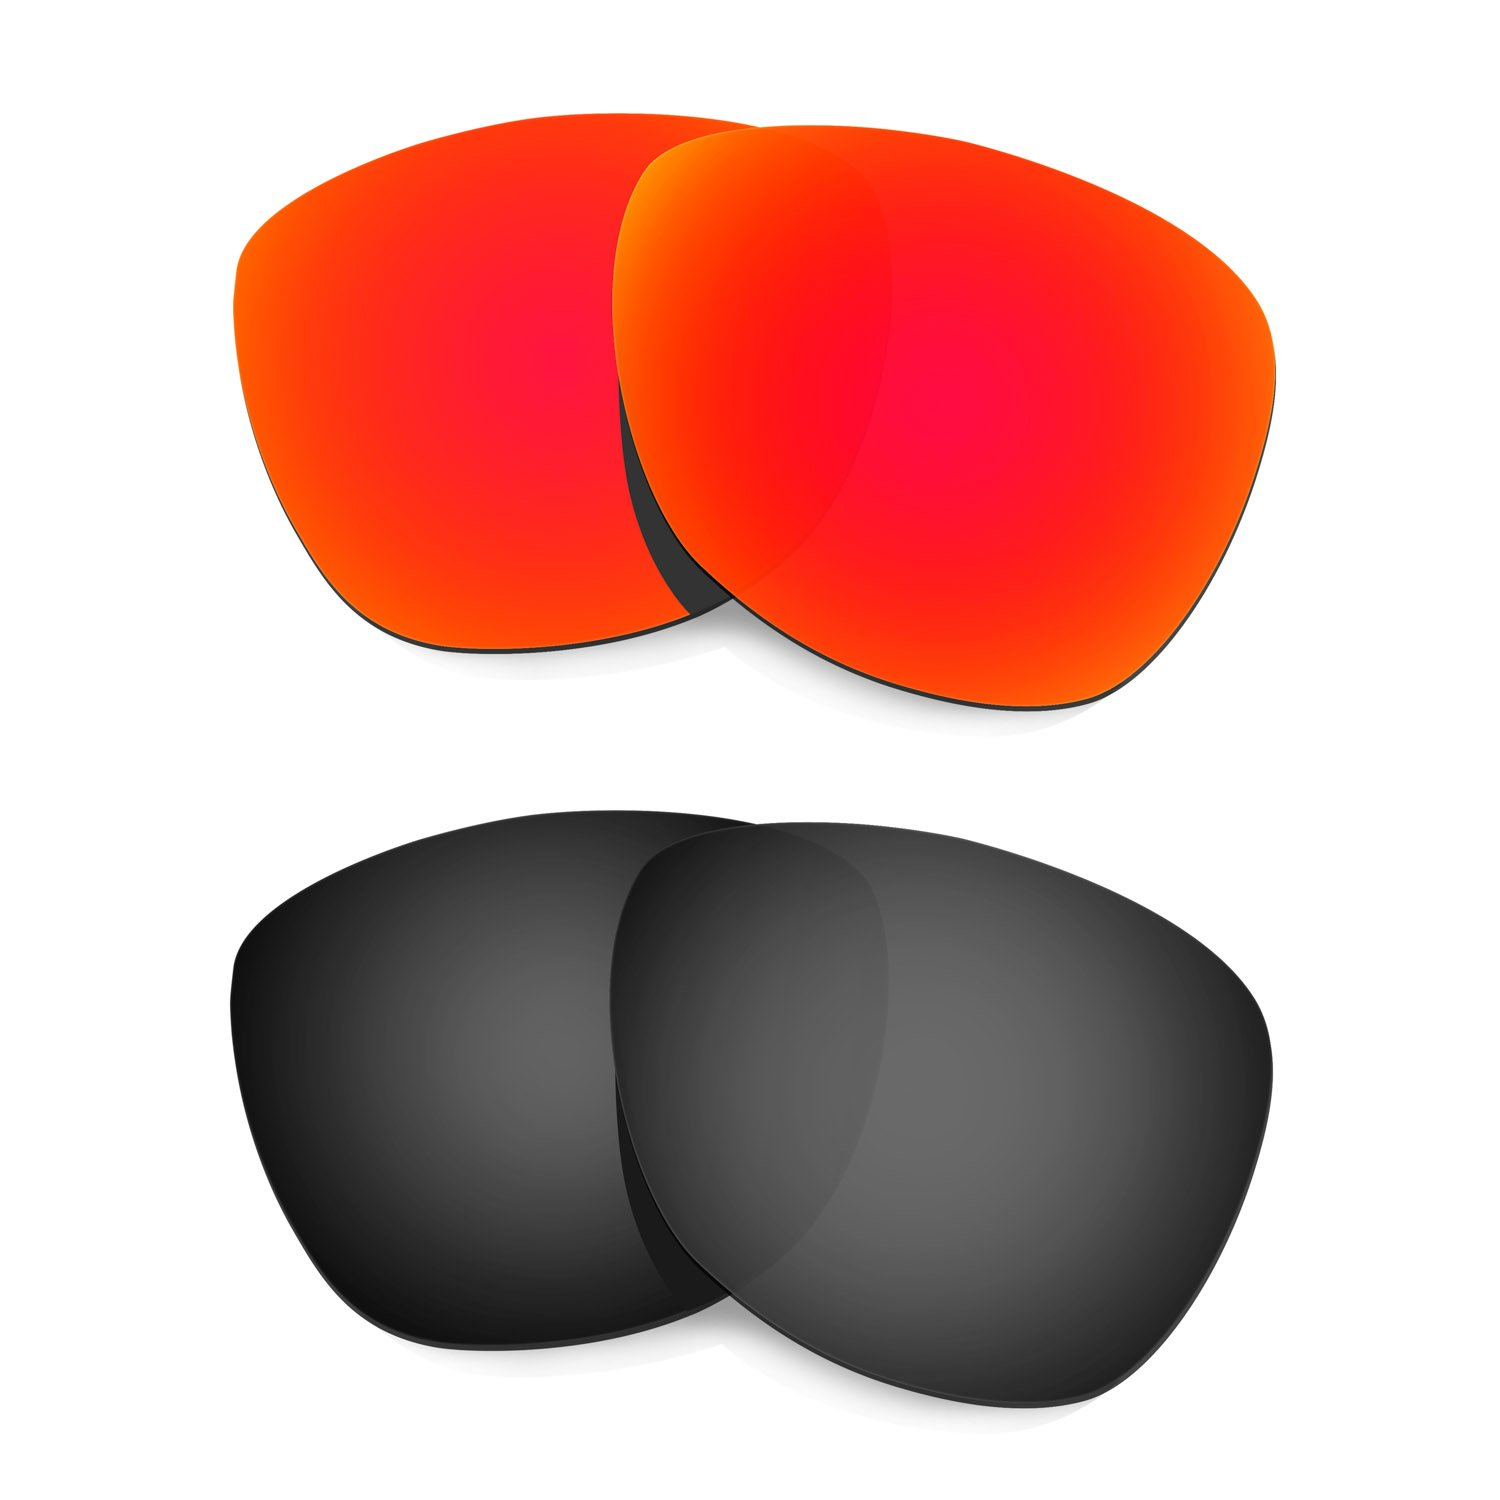 Hkuco Mens Replacement Lenses For Oakley Frogskins (Asia Fit) - 2 pair